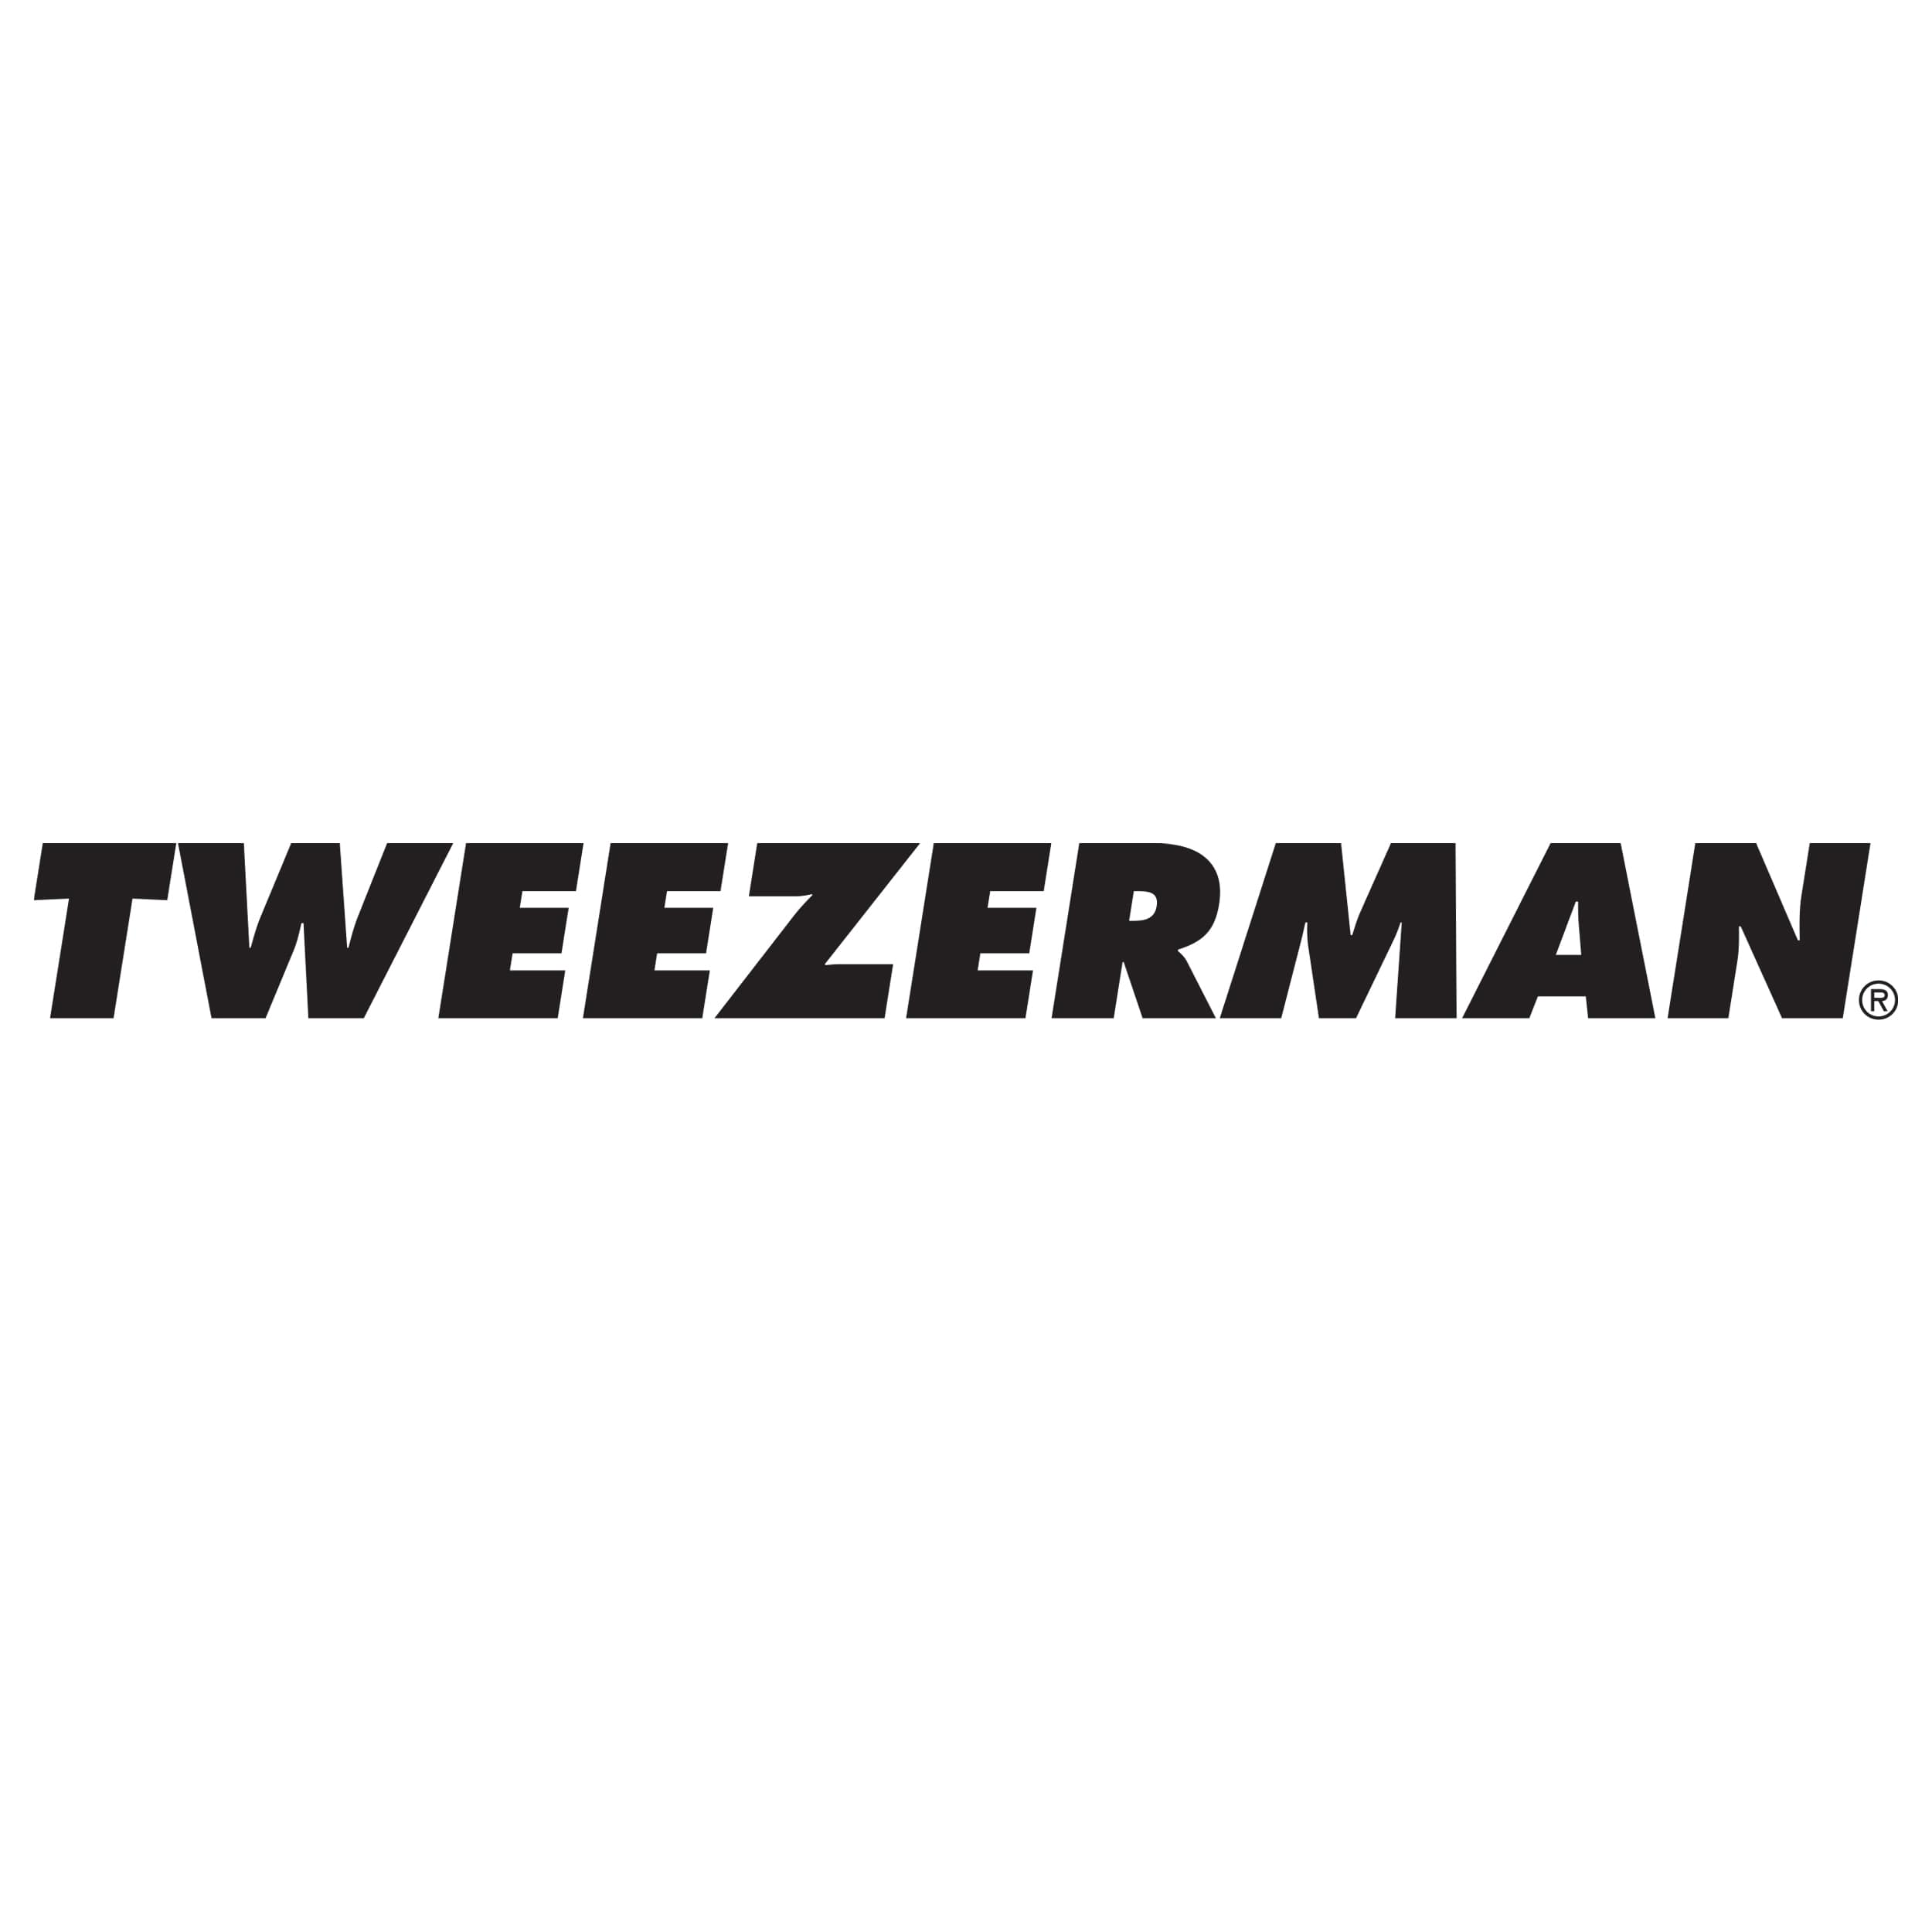 G.E.A.R. Deluxe Shaving Brush -  28011-MG - Tweezerman UK